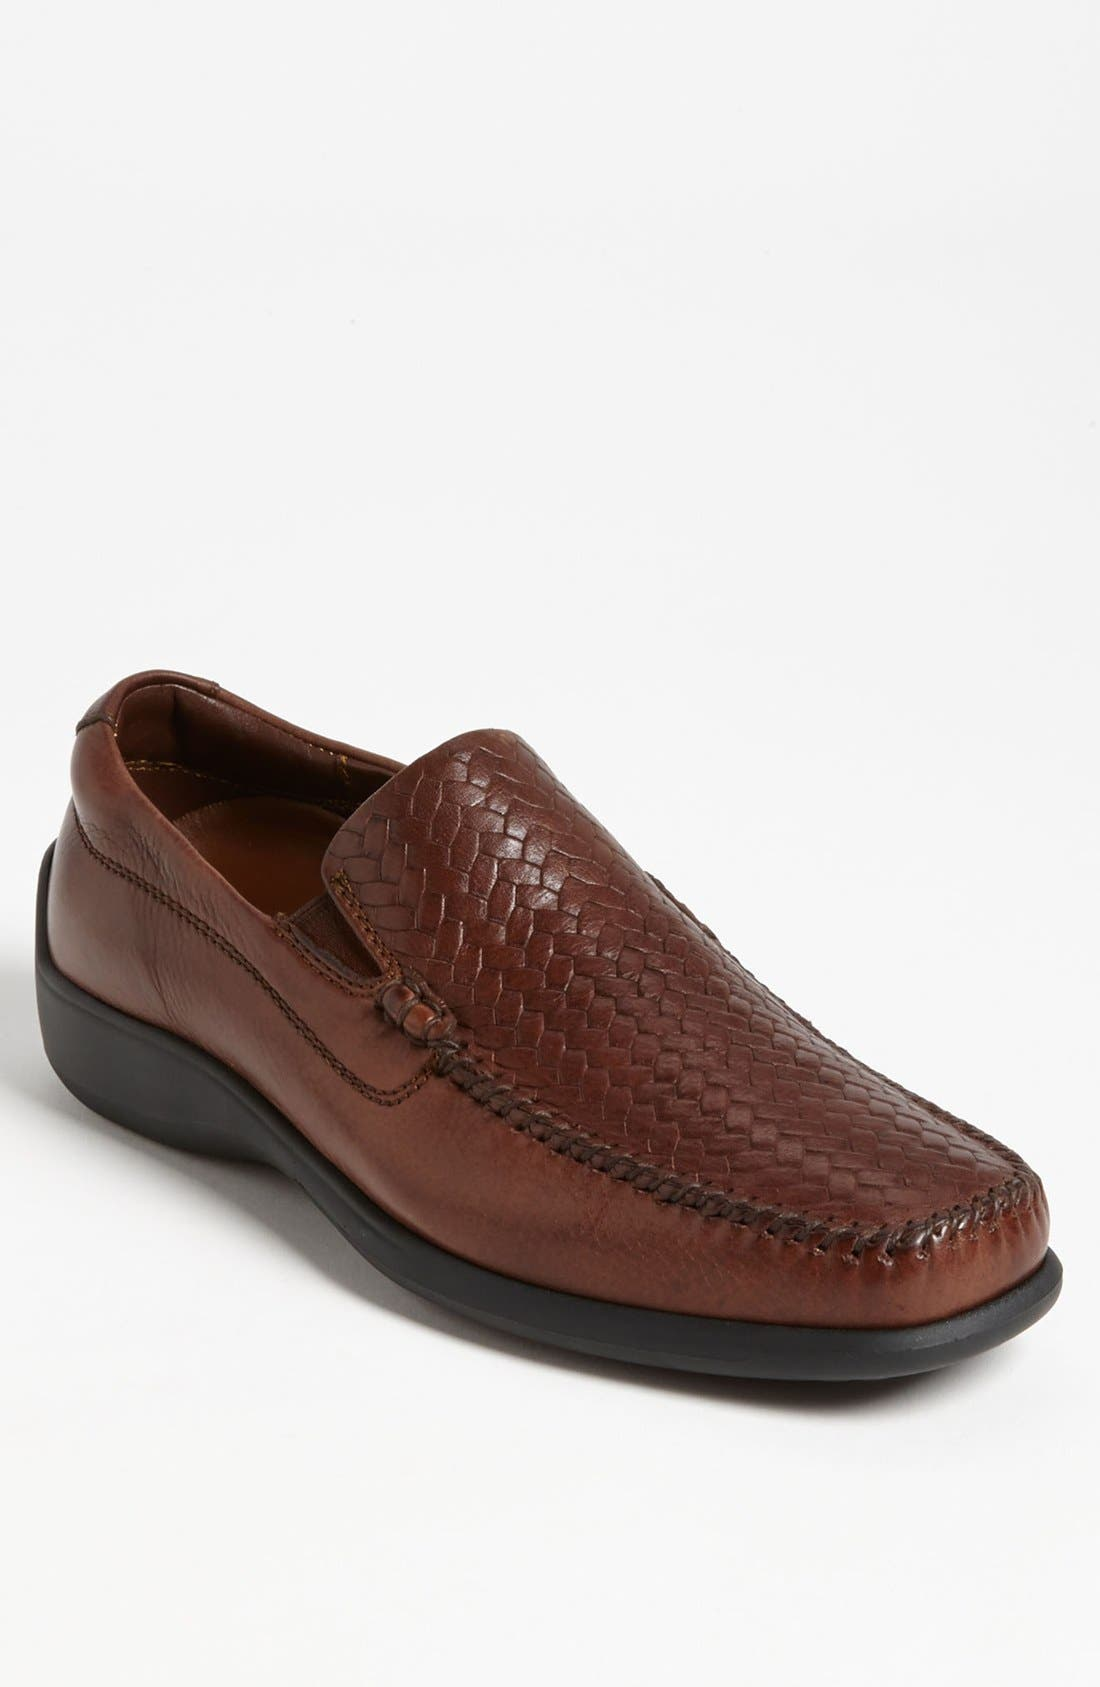 'Palermo' Loafer,                         Main,                         color, 200